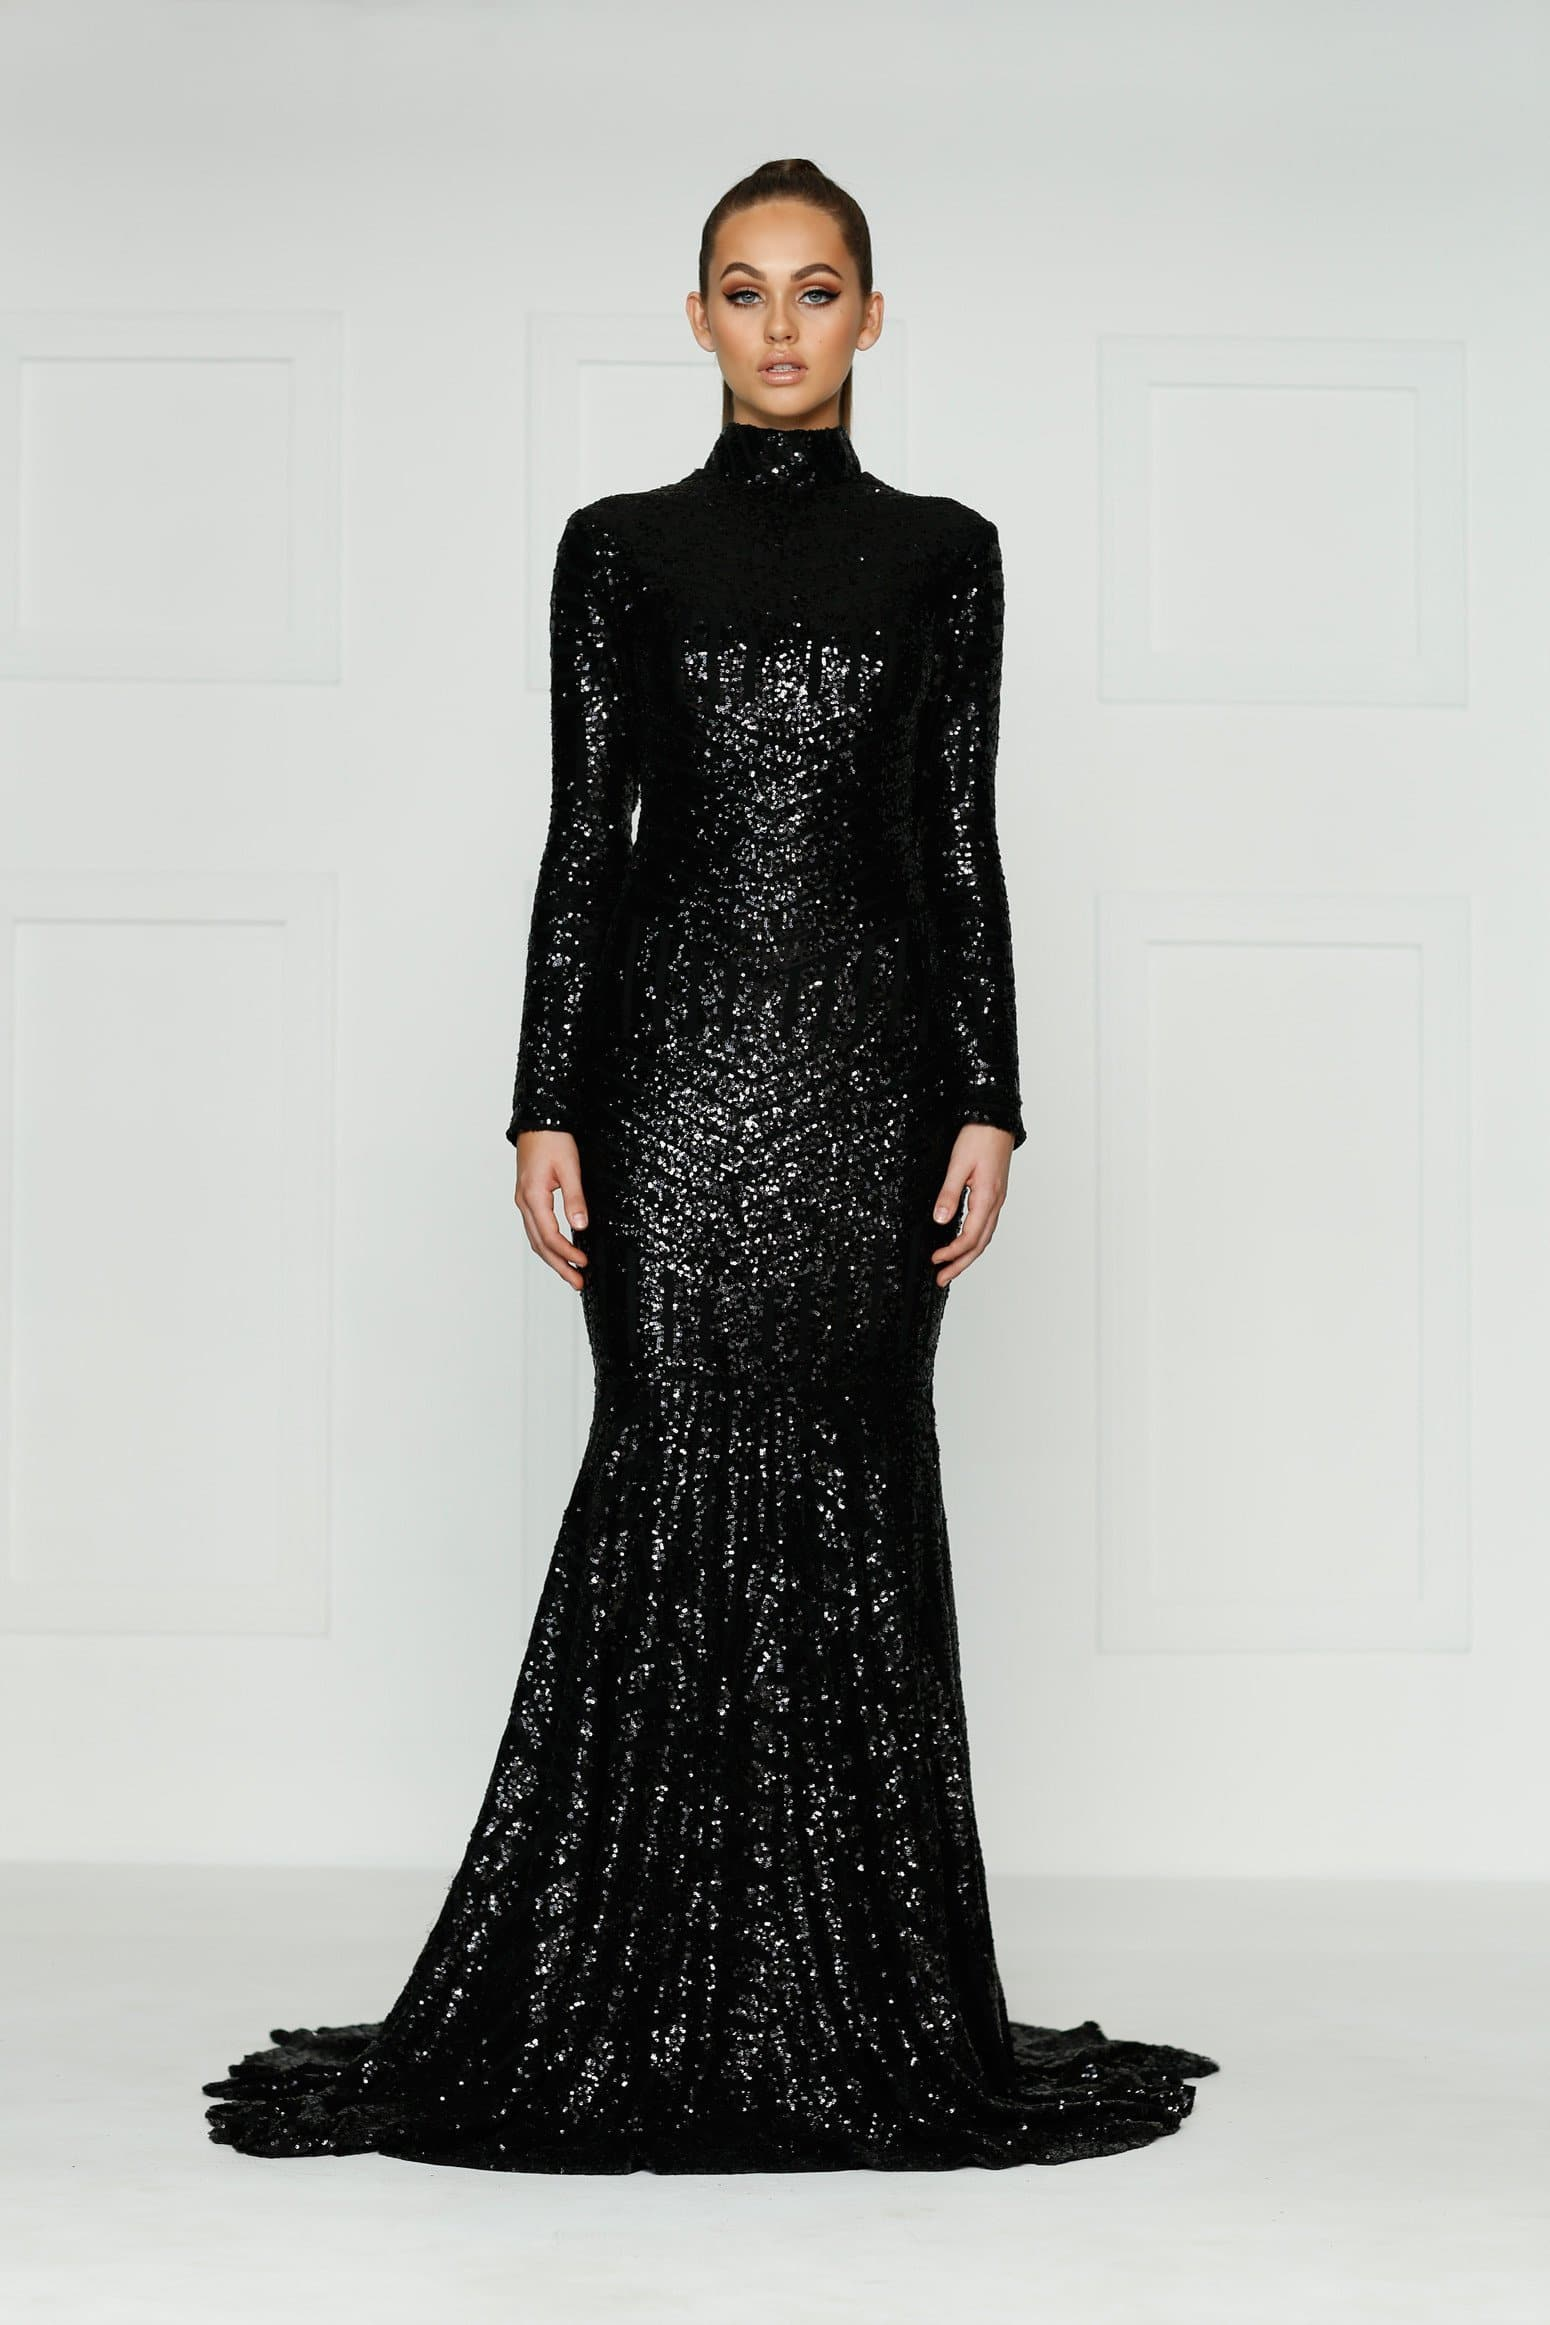 Liz Formal Dress - Black Sequins Long Sleeve High Neck Mermaid Gown